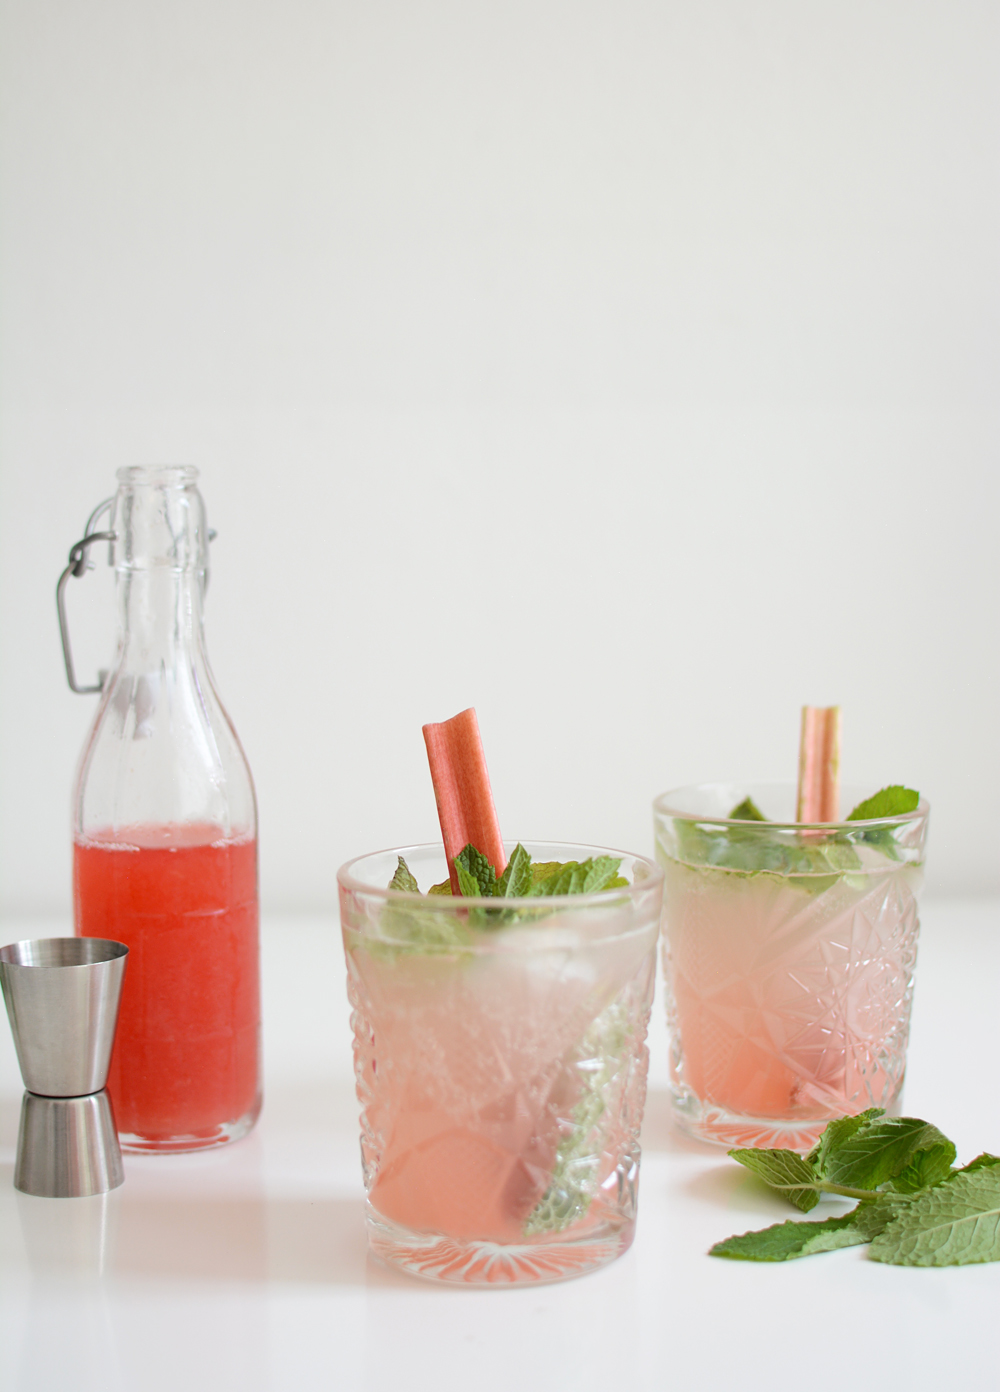 Rhabarber-Mojito Drink | we love handmade